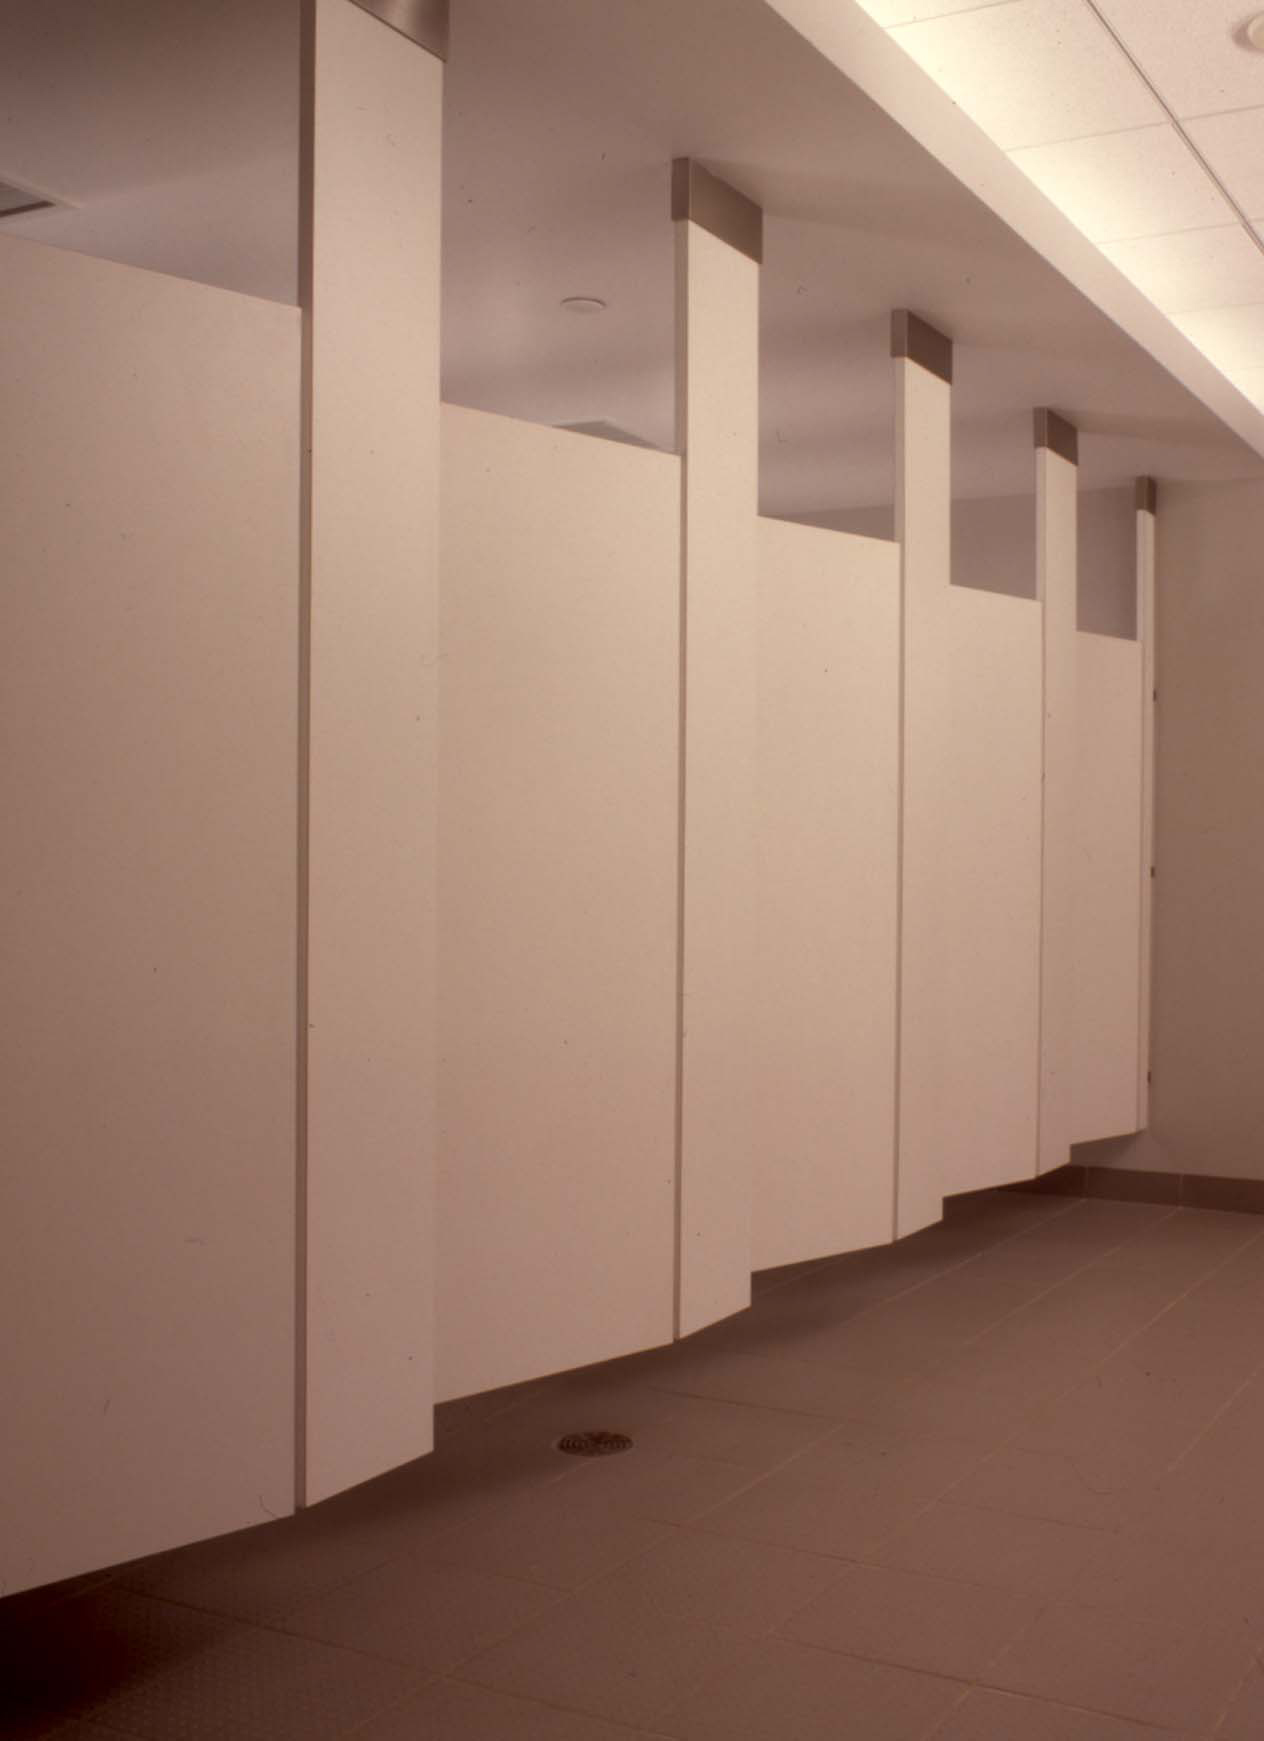 Bobrick Designer Series Restroom Partitions - Bobrick bathroom partitions